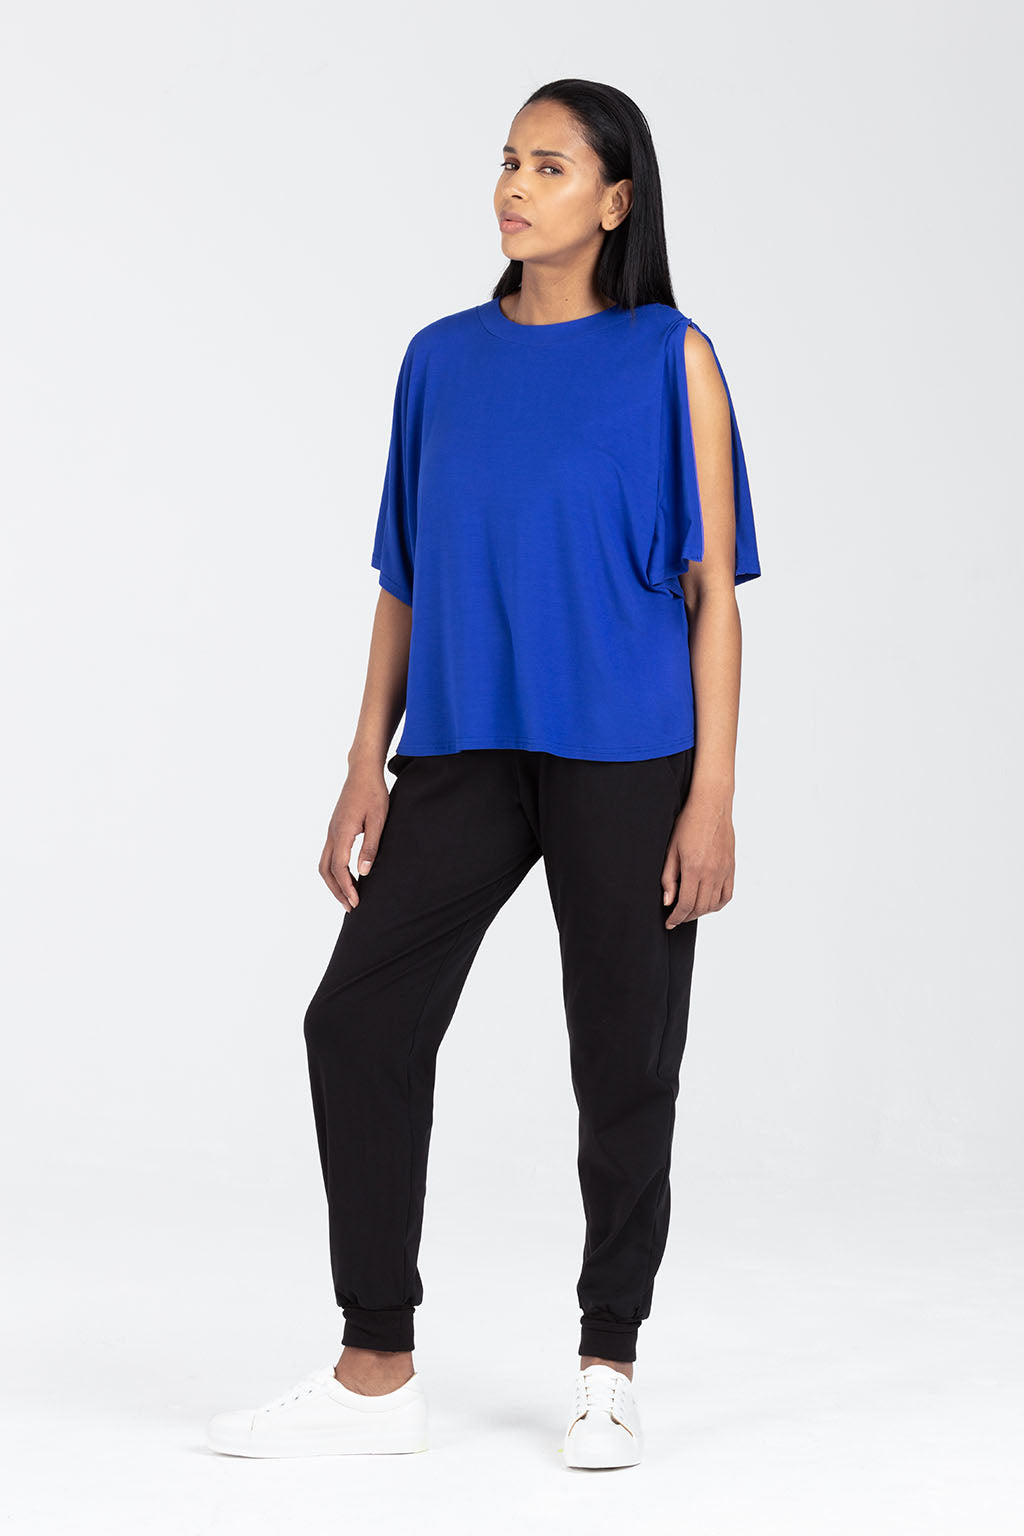 Postnatal Clothes - Breastfeeding Top, Short Sleeve in Blue - Minerva by Sarka London - Breastfeeding View